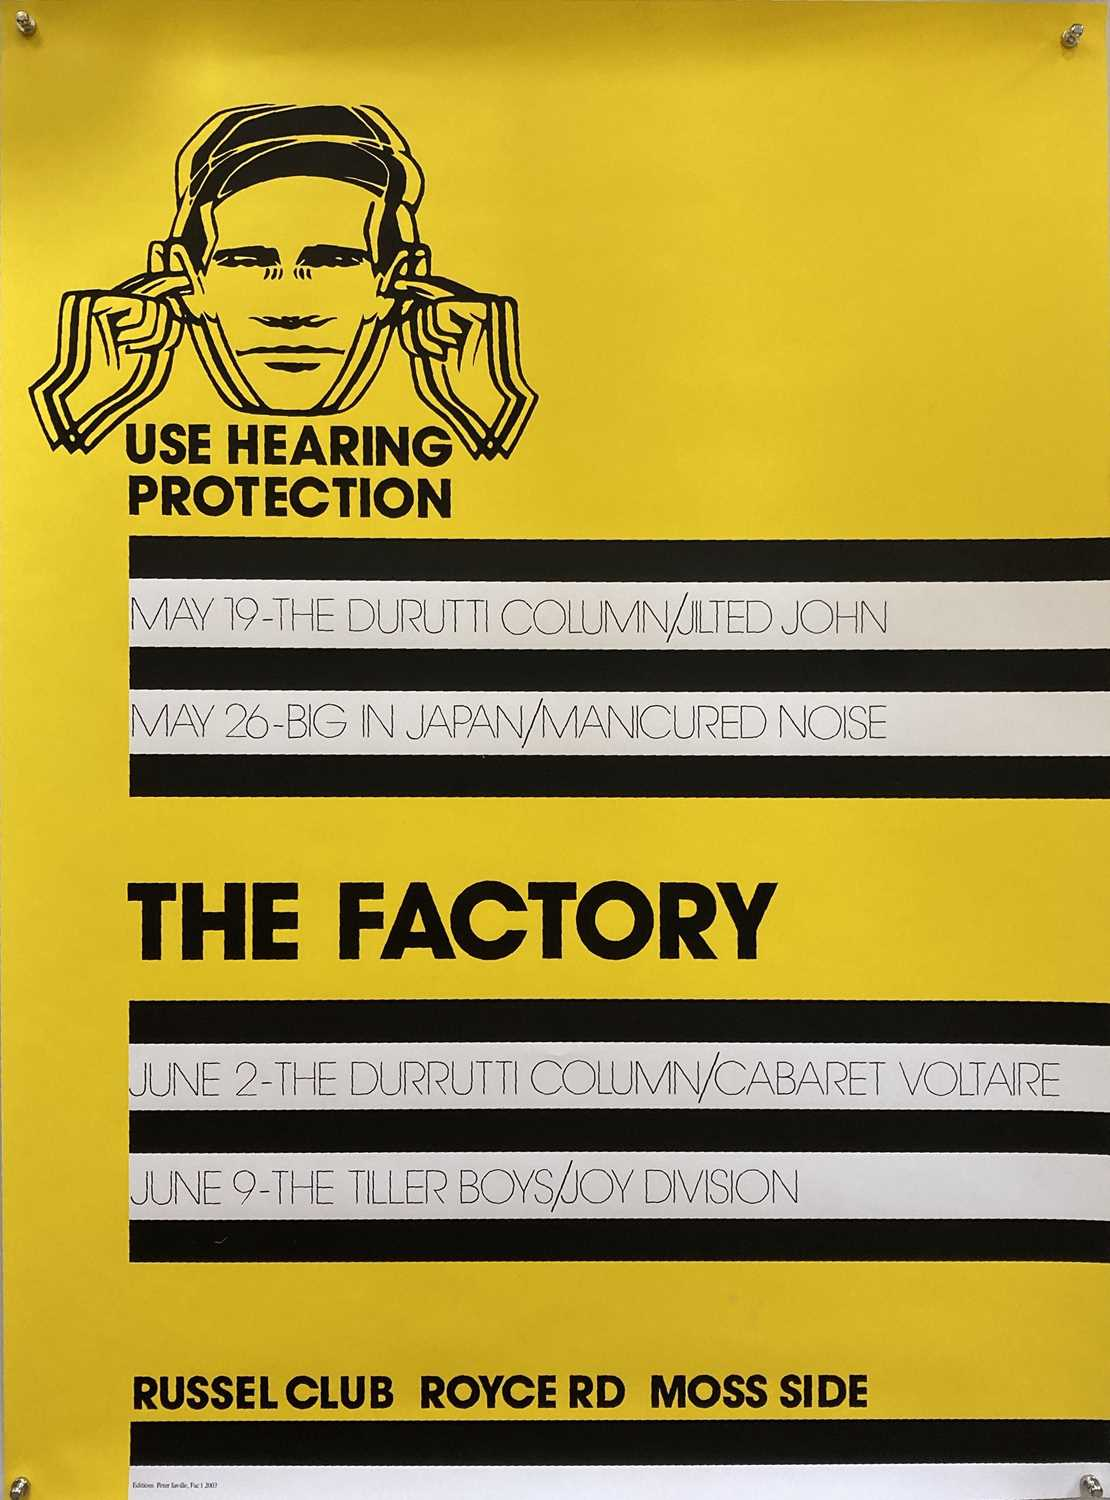 Lot 35 - PETER SAVILLE - LIMITED EDITION 'FAC 1' PRINT WITH SIGNED COA